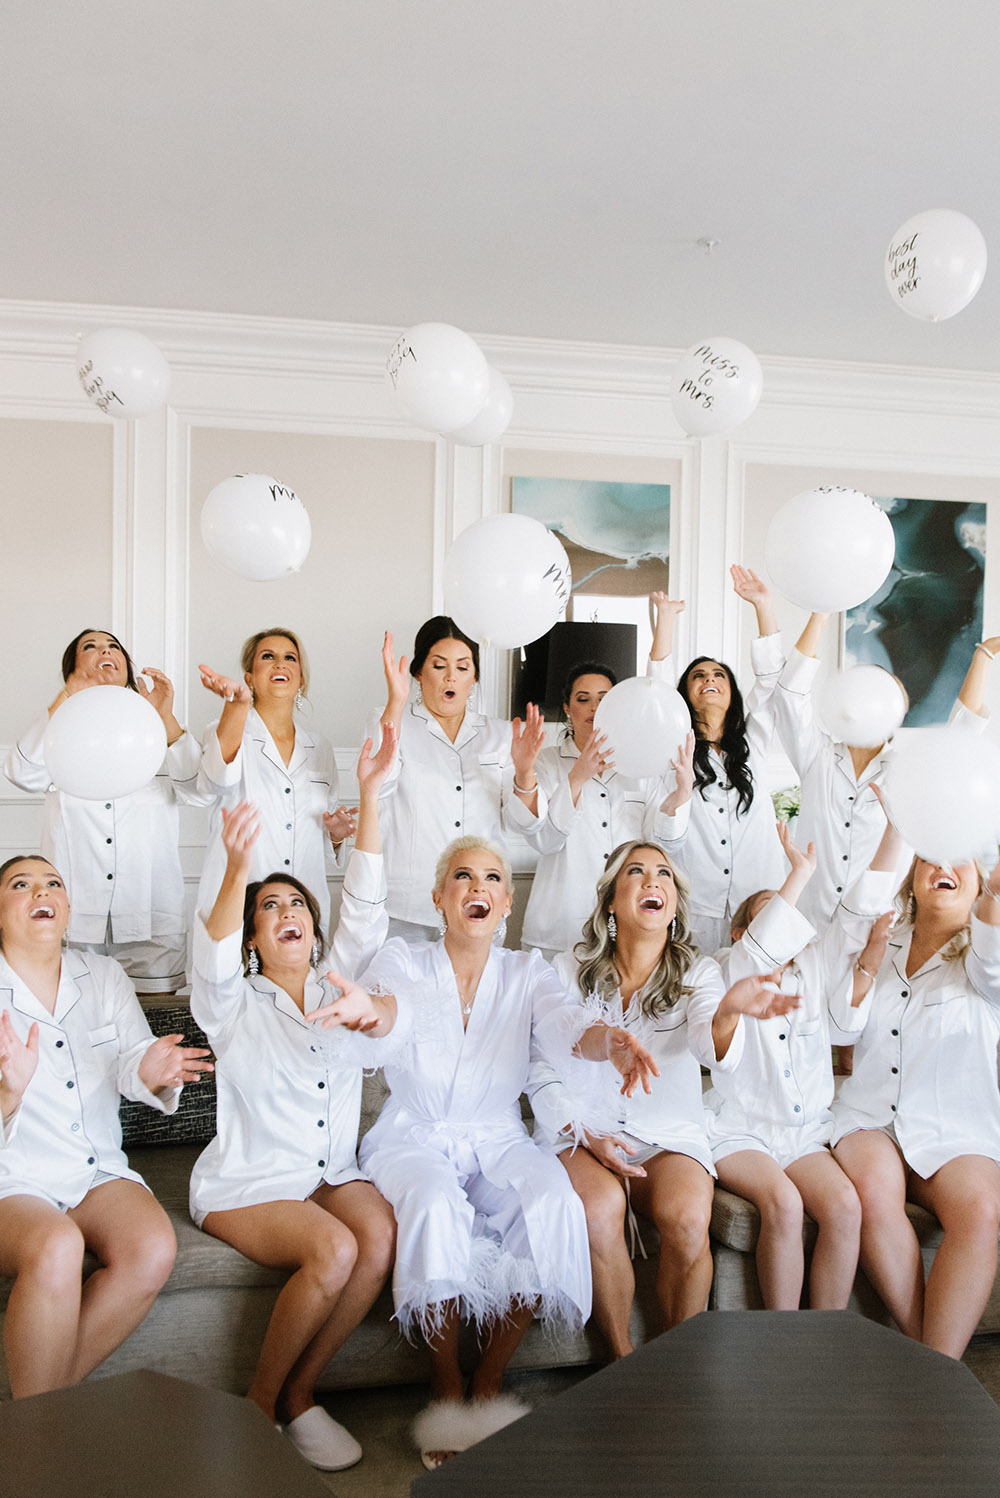 The bride and bridesmaids celebrate before the wedding